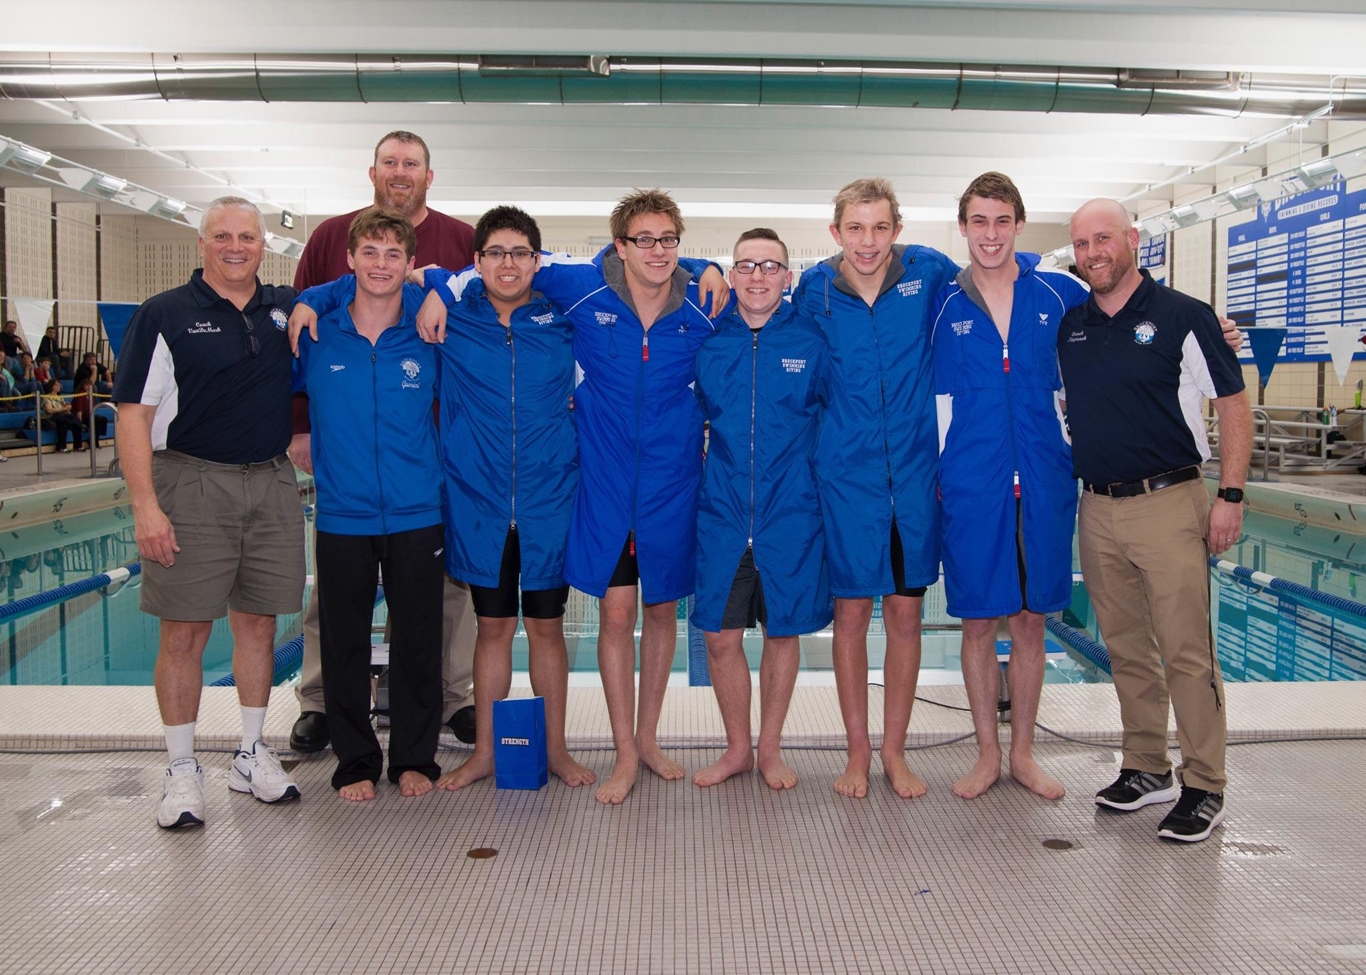 Brockport senior swimmers.